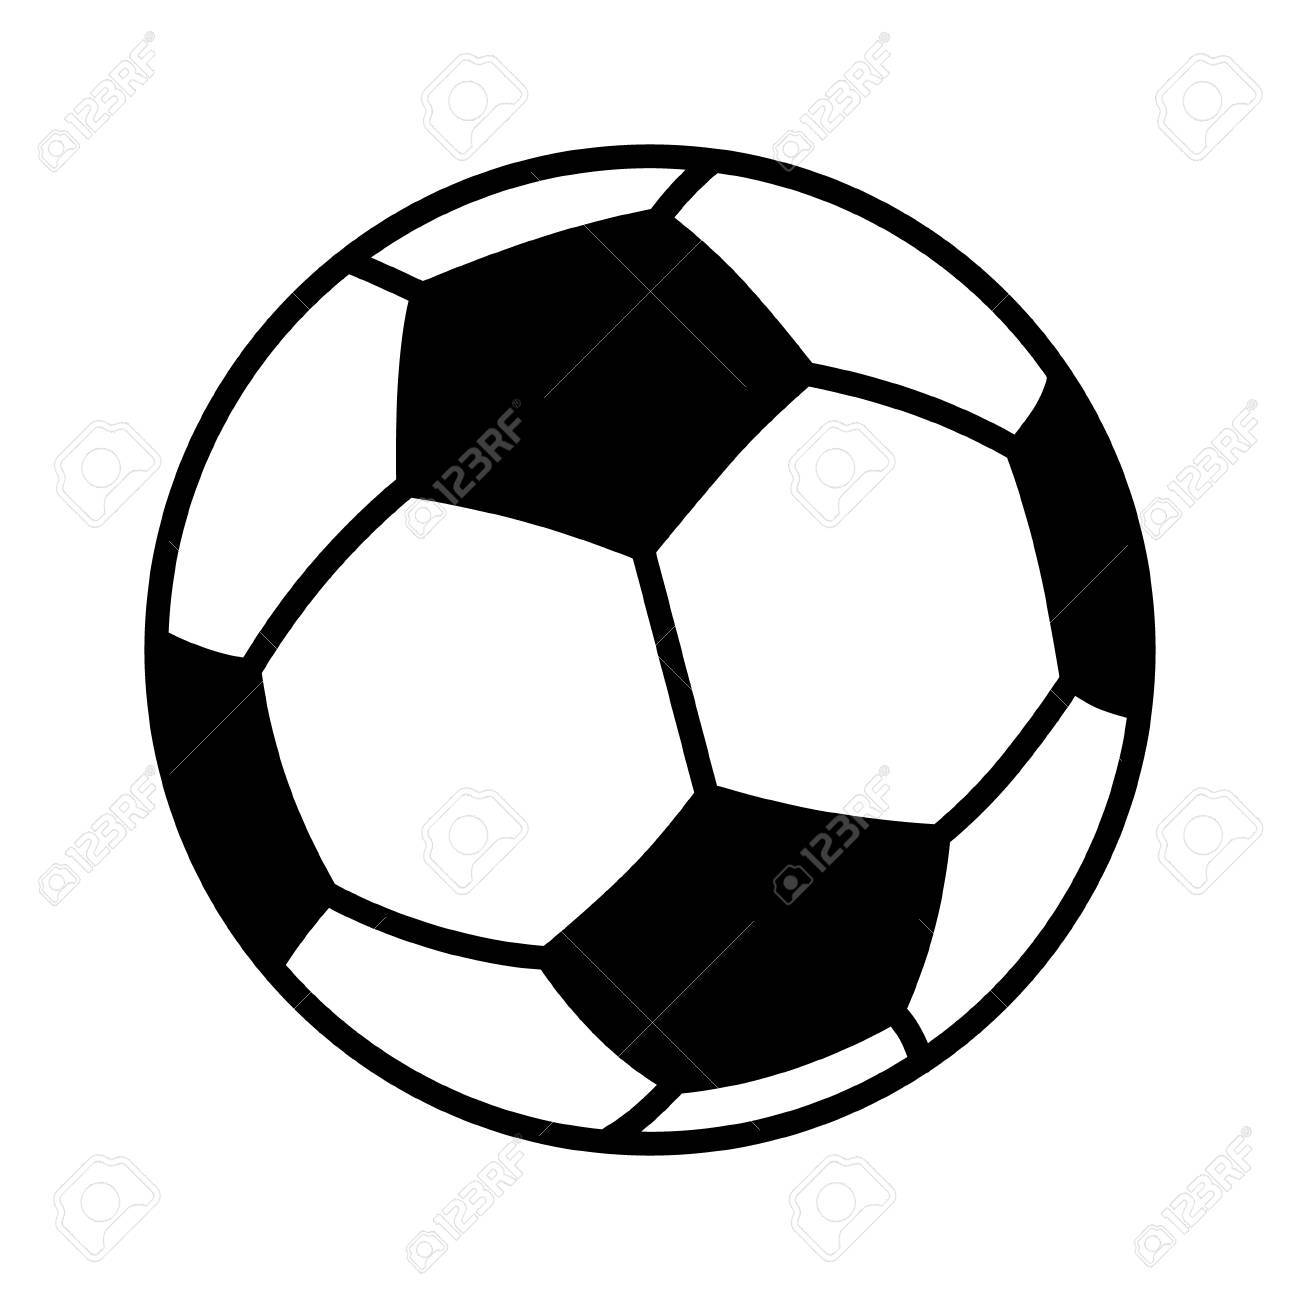 Soccer Ball Or Football Flat Vector Icon For Sports Apps And